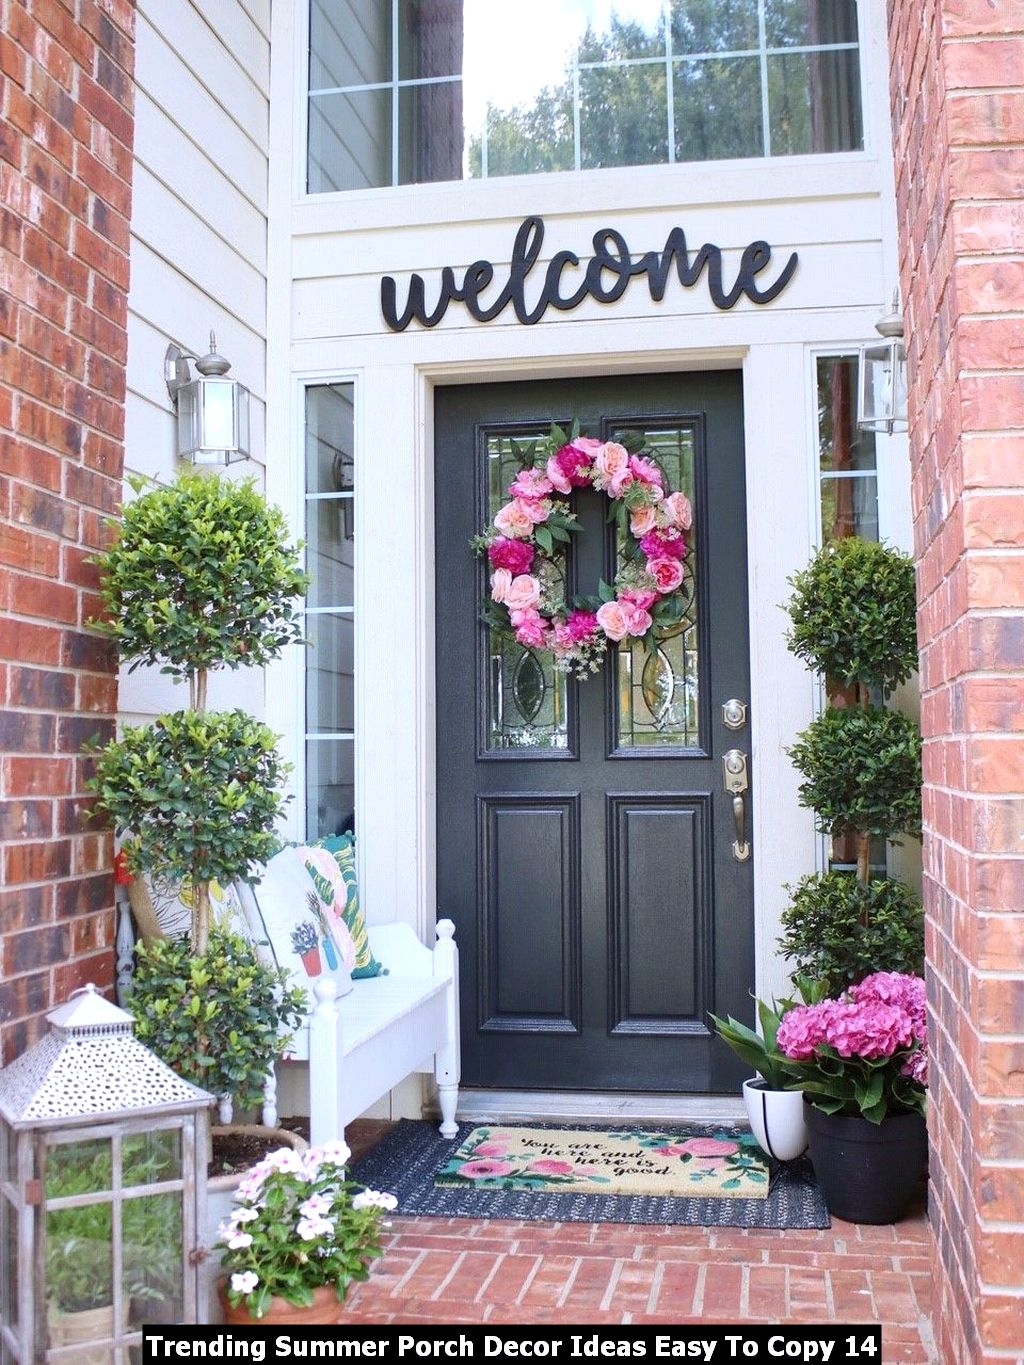 Trending Summer Porch Decor Ideas Easy To Copy 14